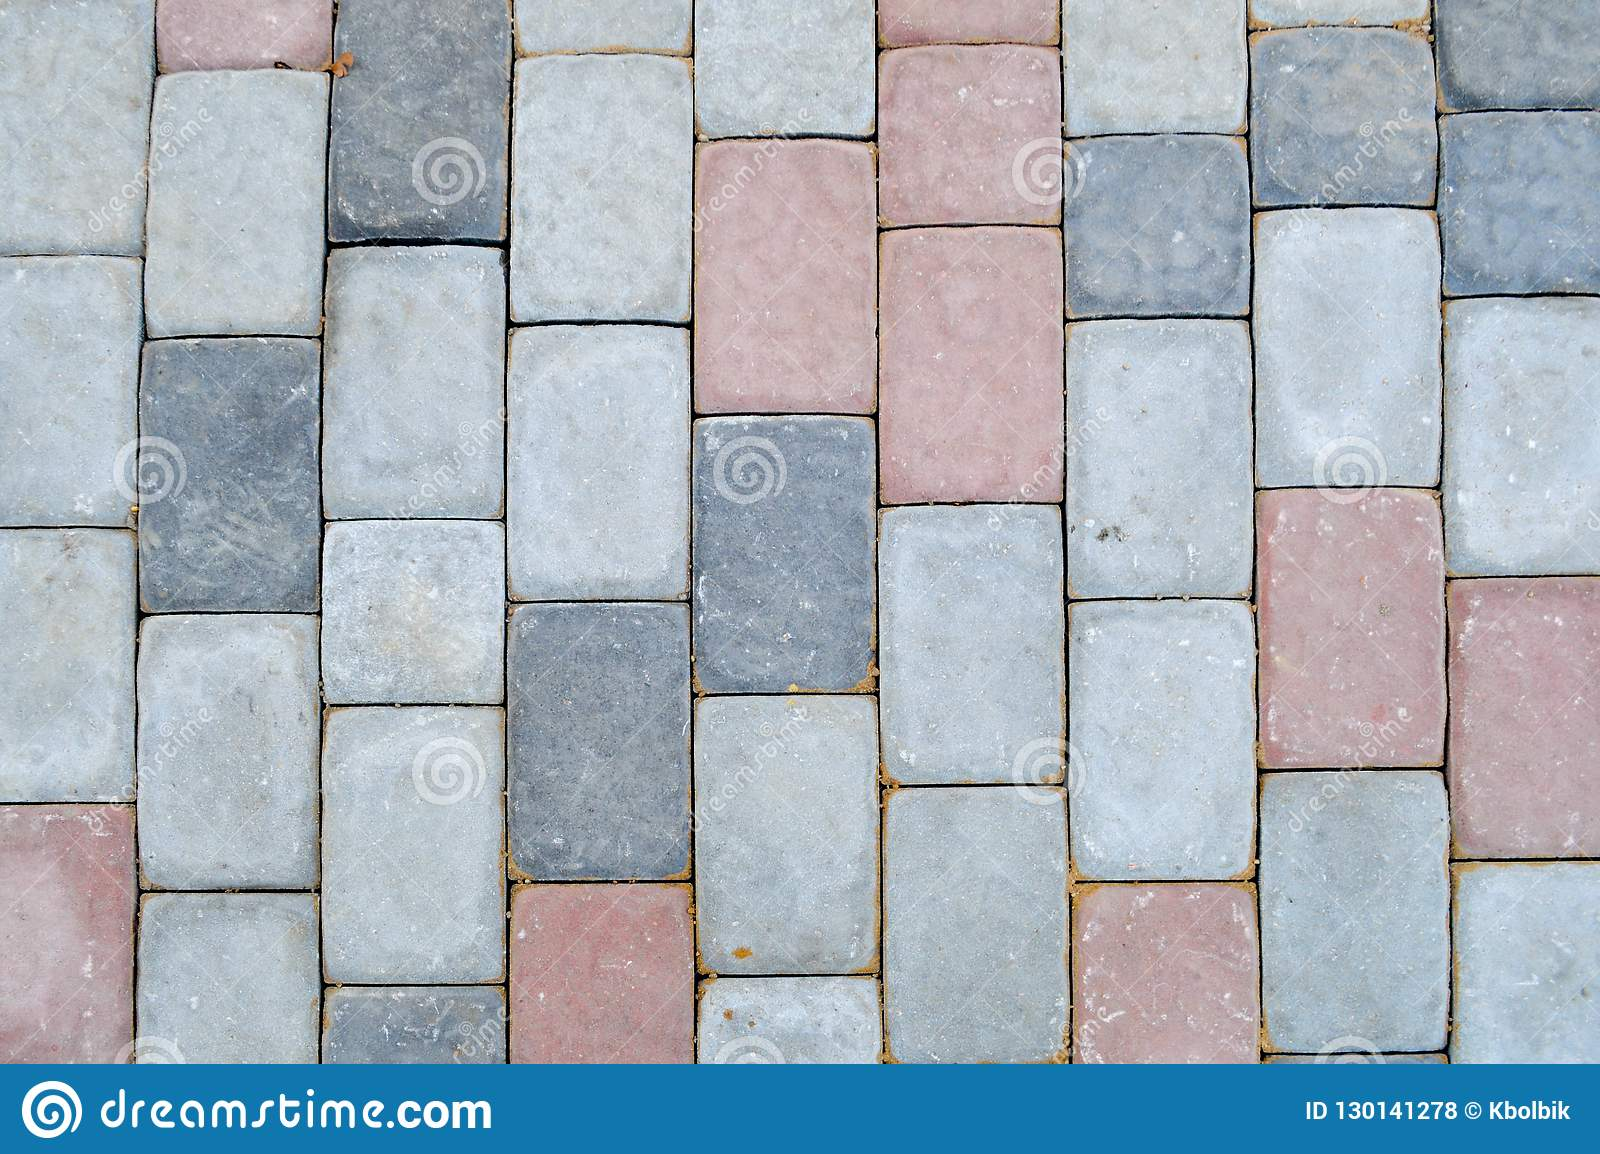 Texture of gray rectangular concrete stone paving slabs on the road with seams. The background